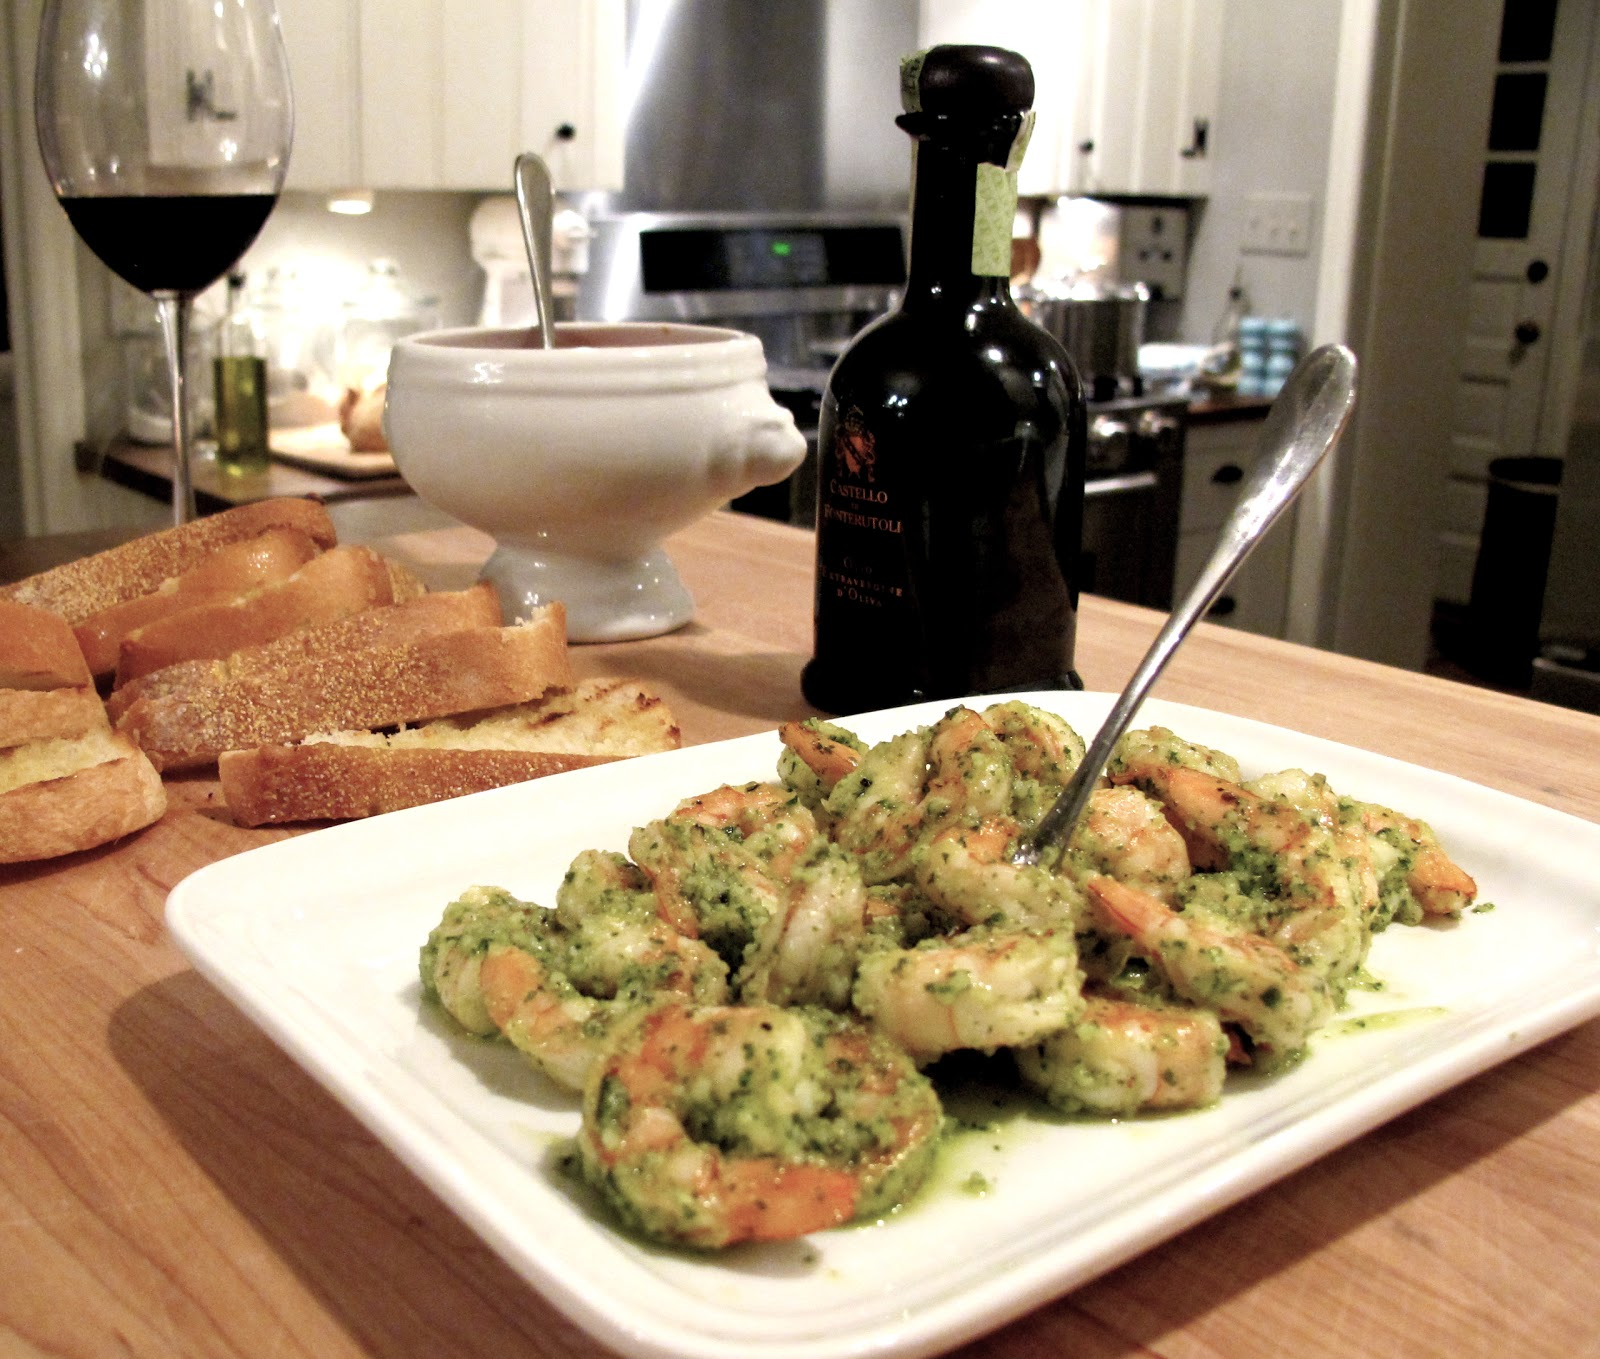 Recipes Shrimp Pesto Etizer Tomato Olive Bruschetta Tuscan Pasta Dinner Party Menu